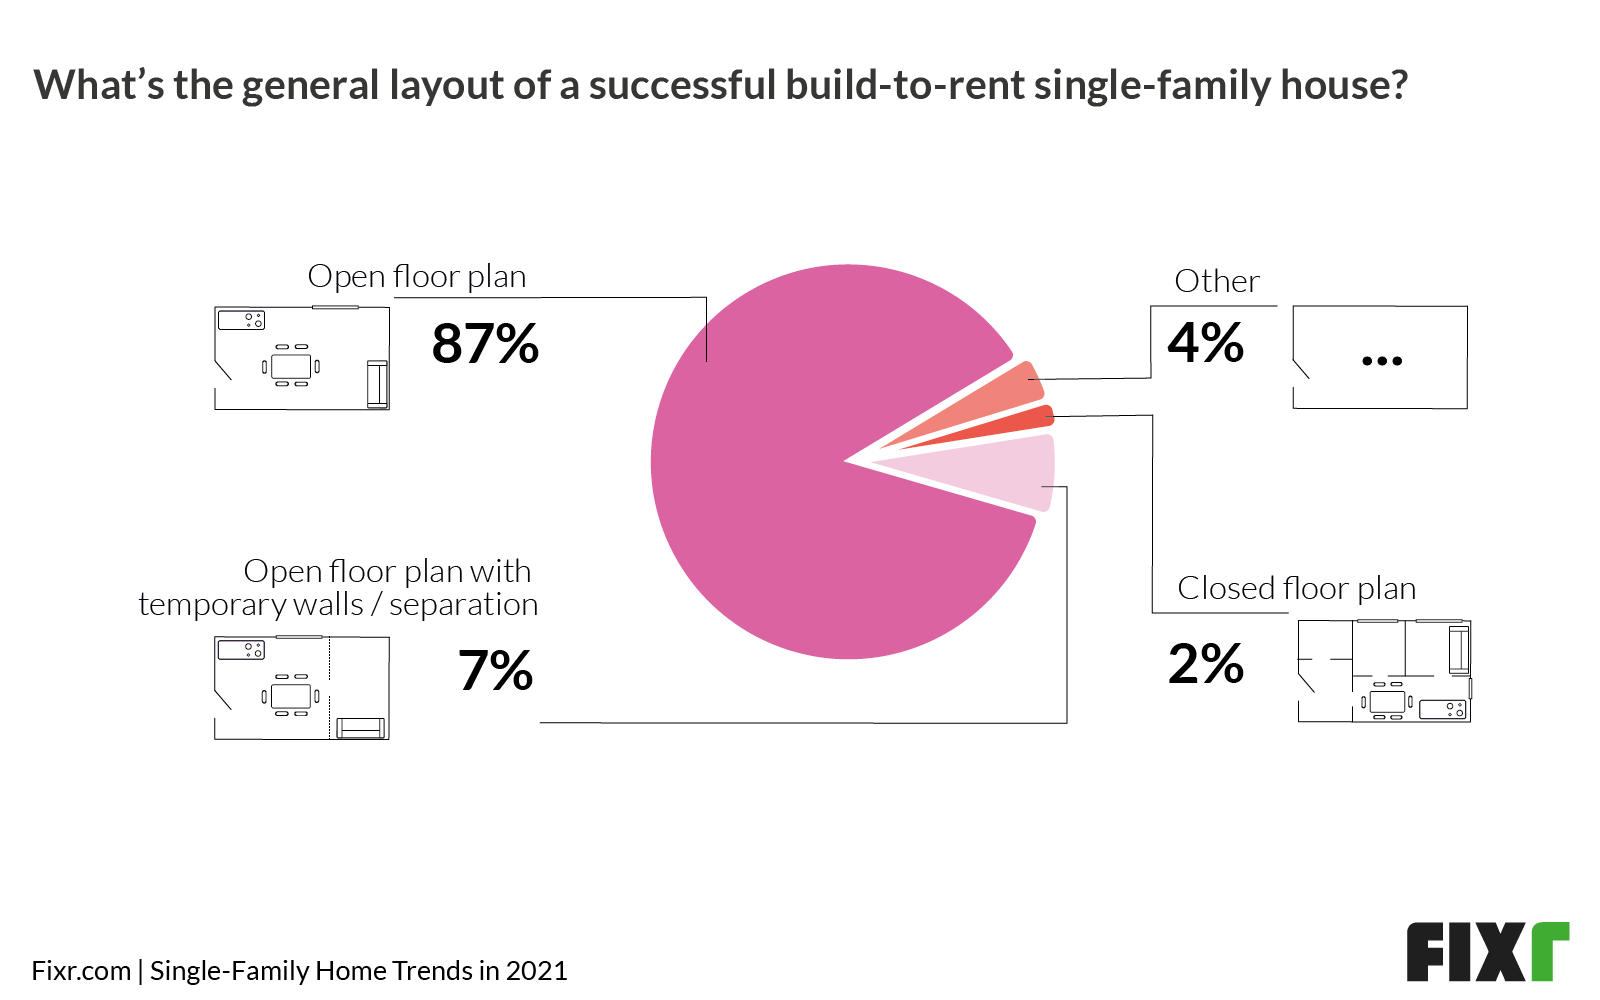 Typical layout for build-to-rent single-family homes